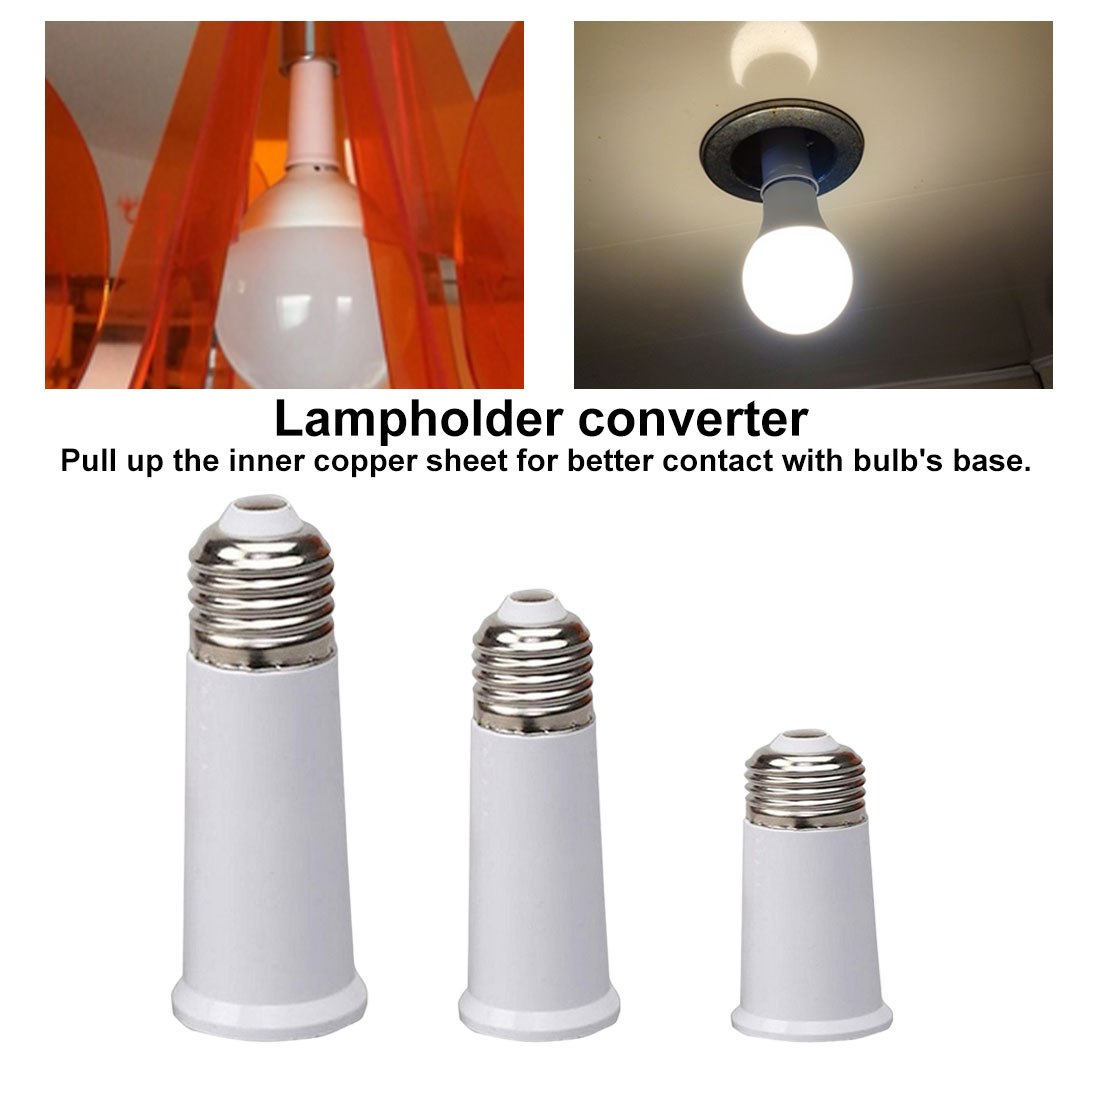 E27 To E27 Lengthen Lamp Base Converter LED Light Base E27-E27 Extender Lamp Socket Extension Light Bulb Holder Screw Adapter